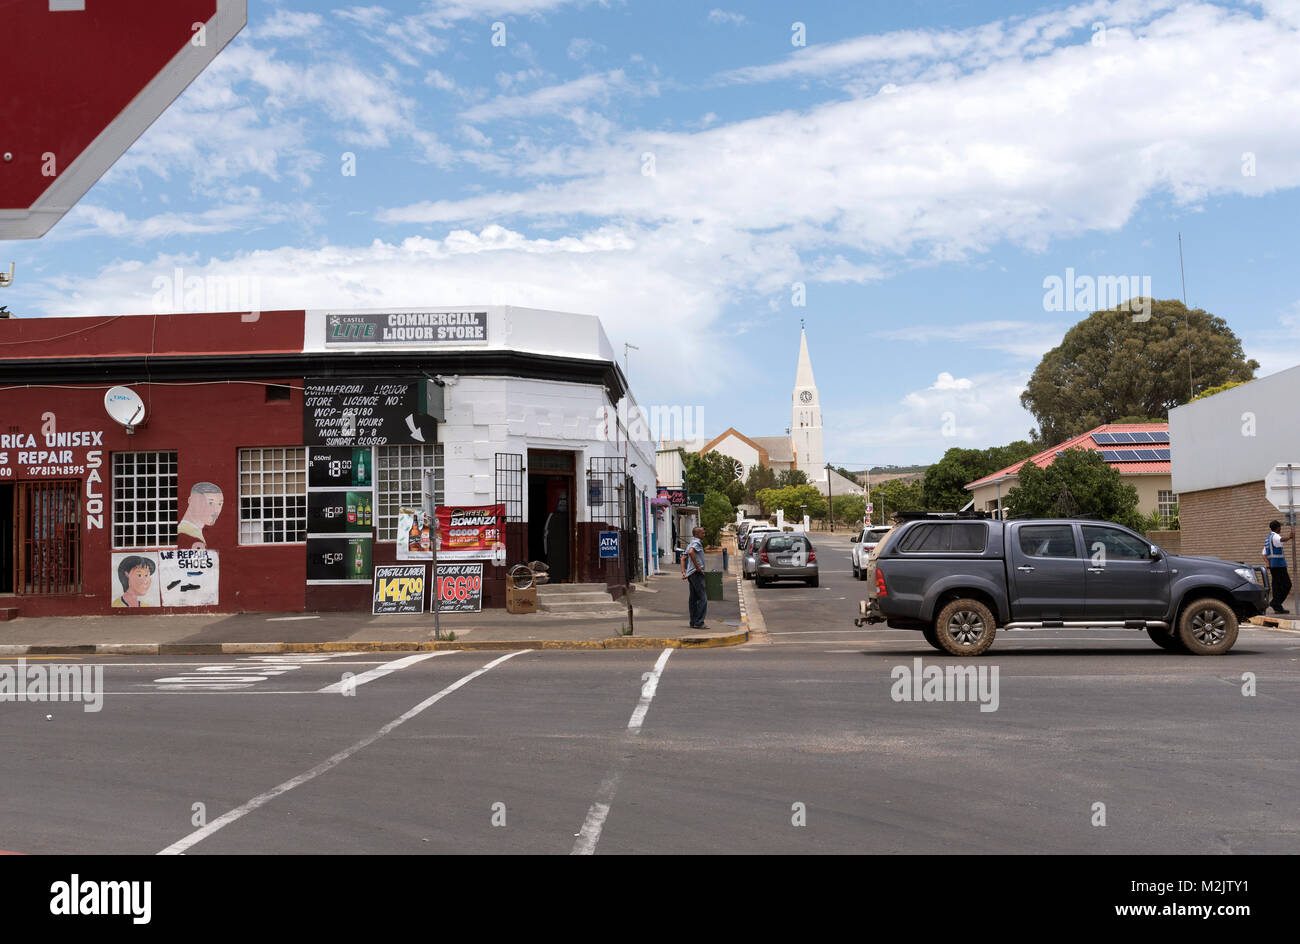 Town centre of Darling in the Western Cape region of South Africa - Stock Image